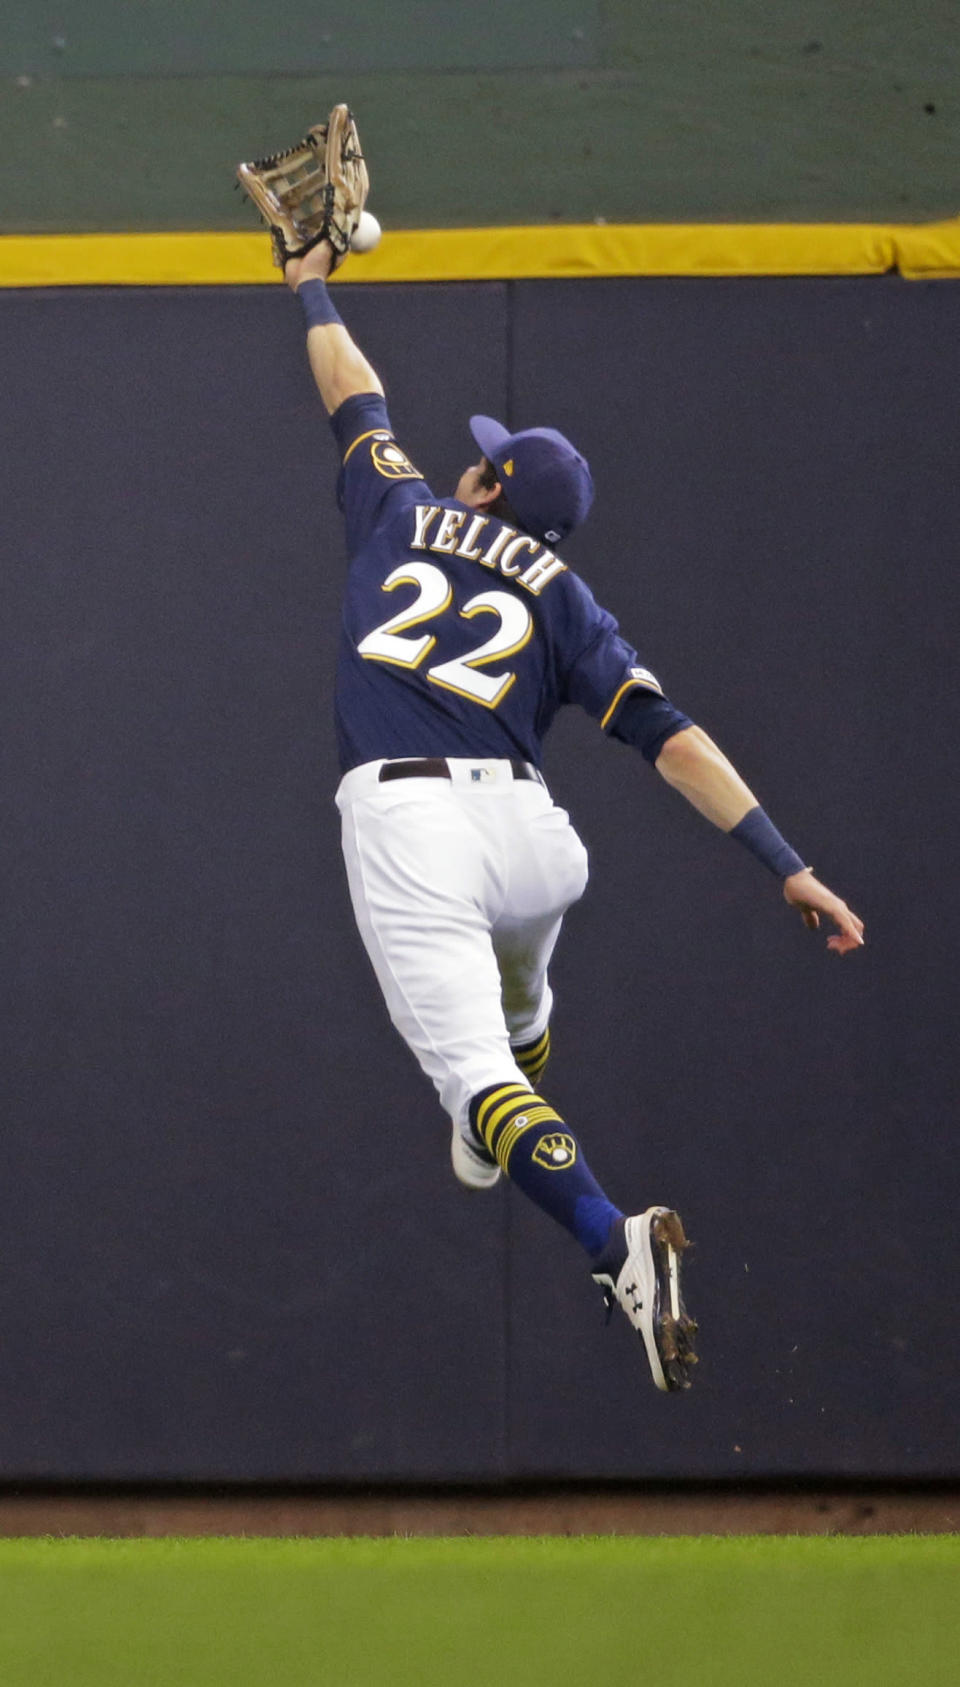 Milwaukee Brewers' Christian Yelich can't catch a triple by Minnesota Twins' Ehire Adrianza during the sixth inning of a baseball game Wednesday, Aug. 14, 2019, in Milwaukee. (AP Photo/Jeffrey Phelps)